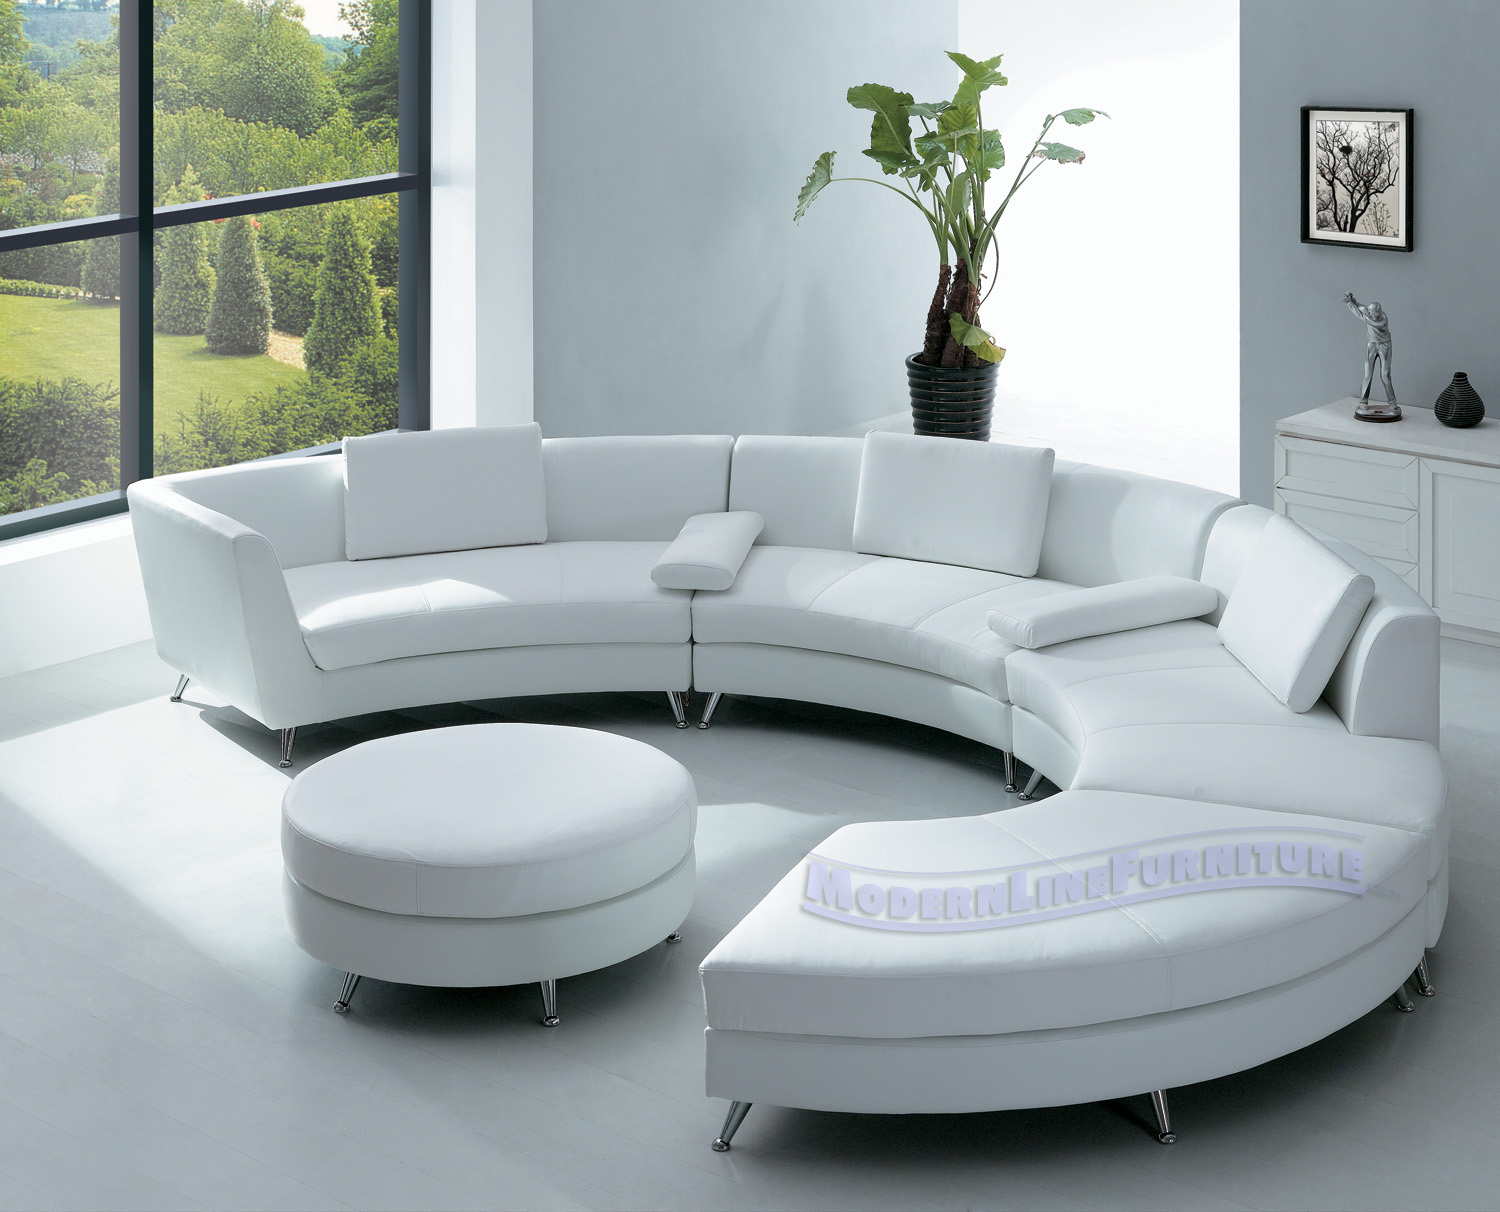 designer sofa furniture england reviews beautiful couches interior design and deco